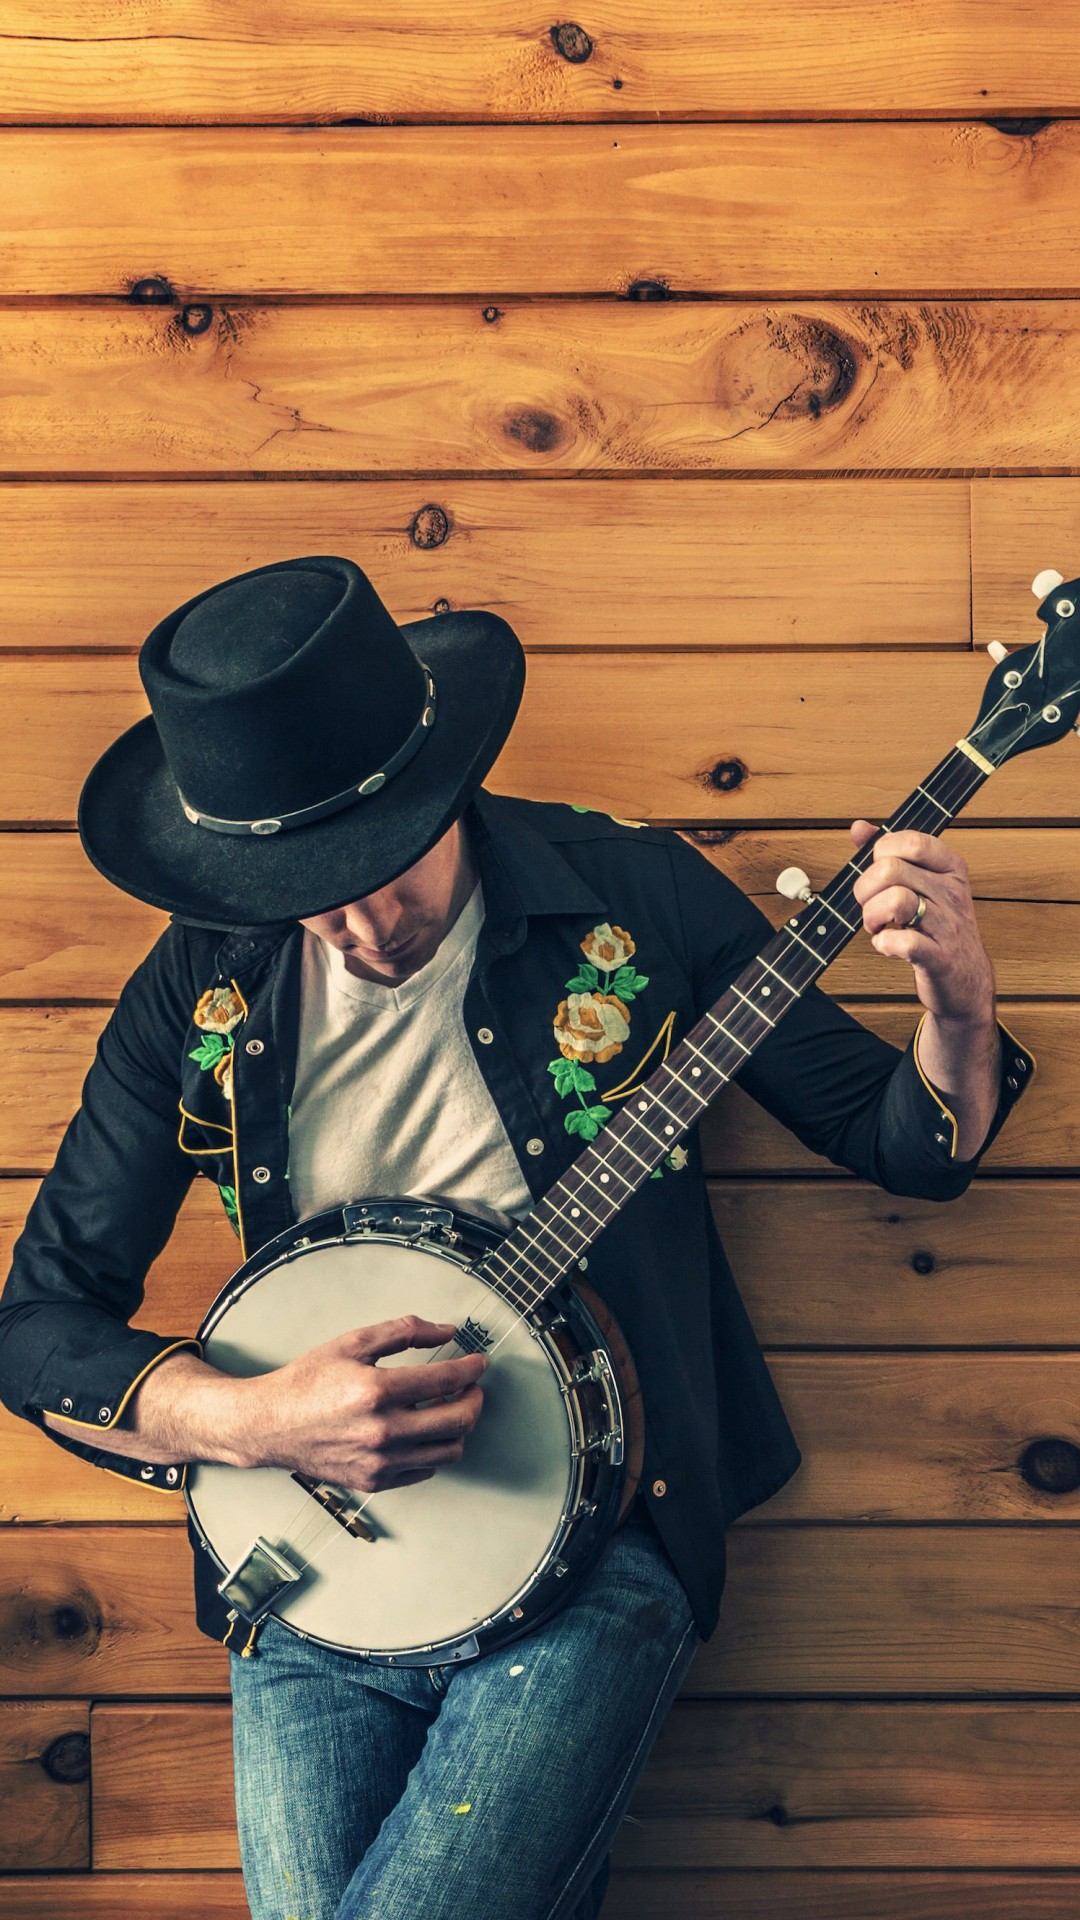 Banjo Player Wallpaper for SAMSUNG Galaxy S5